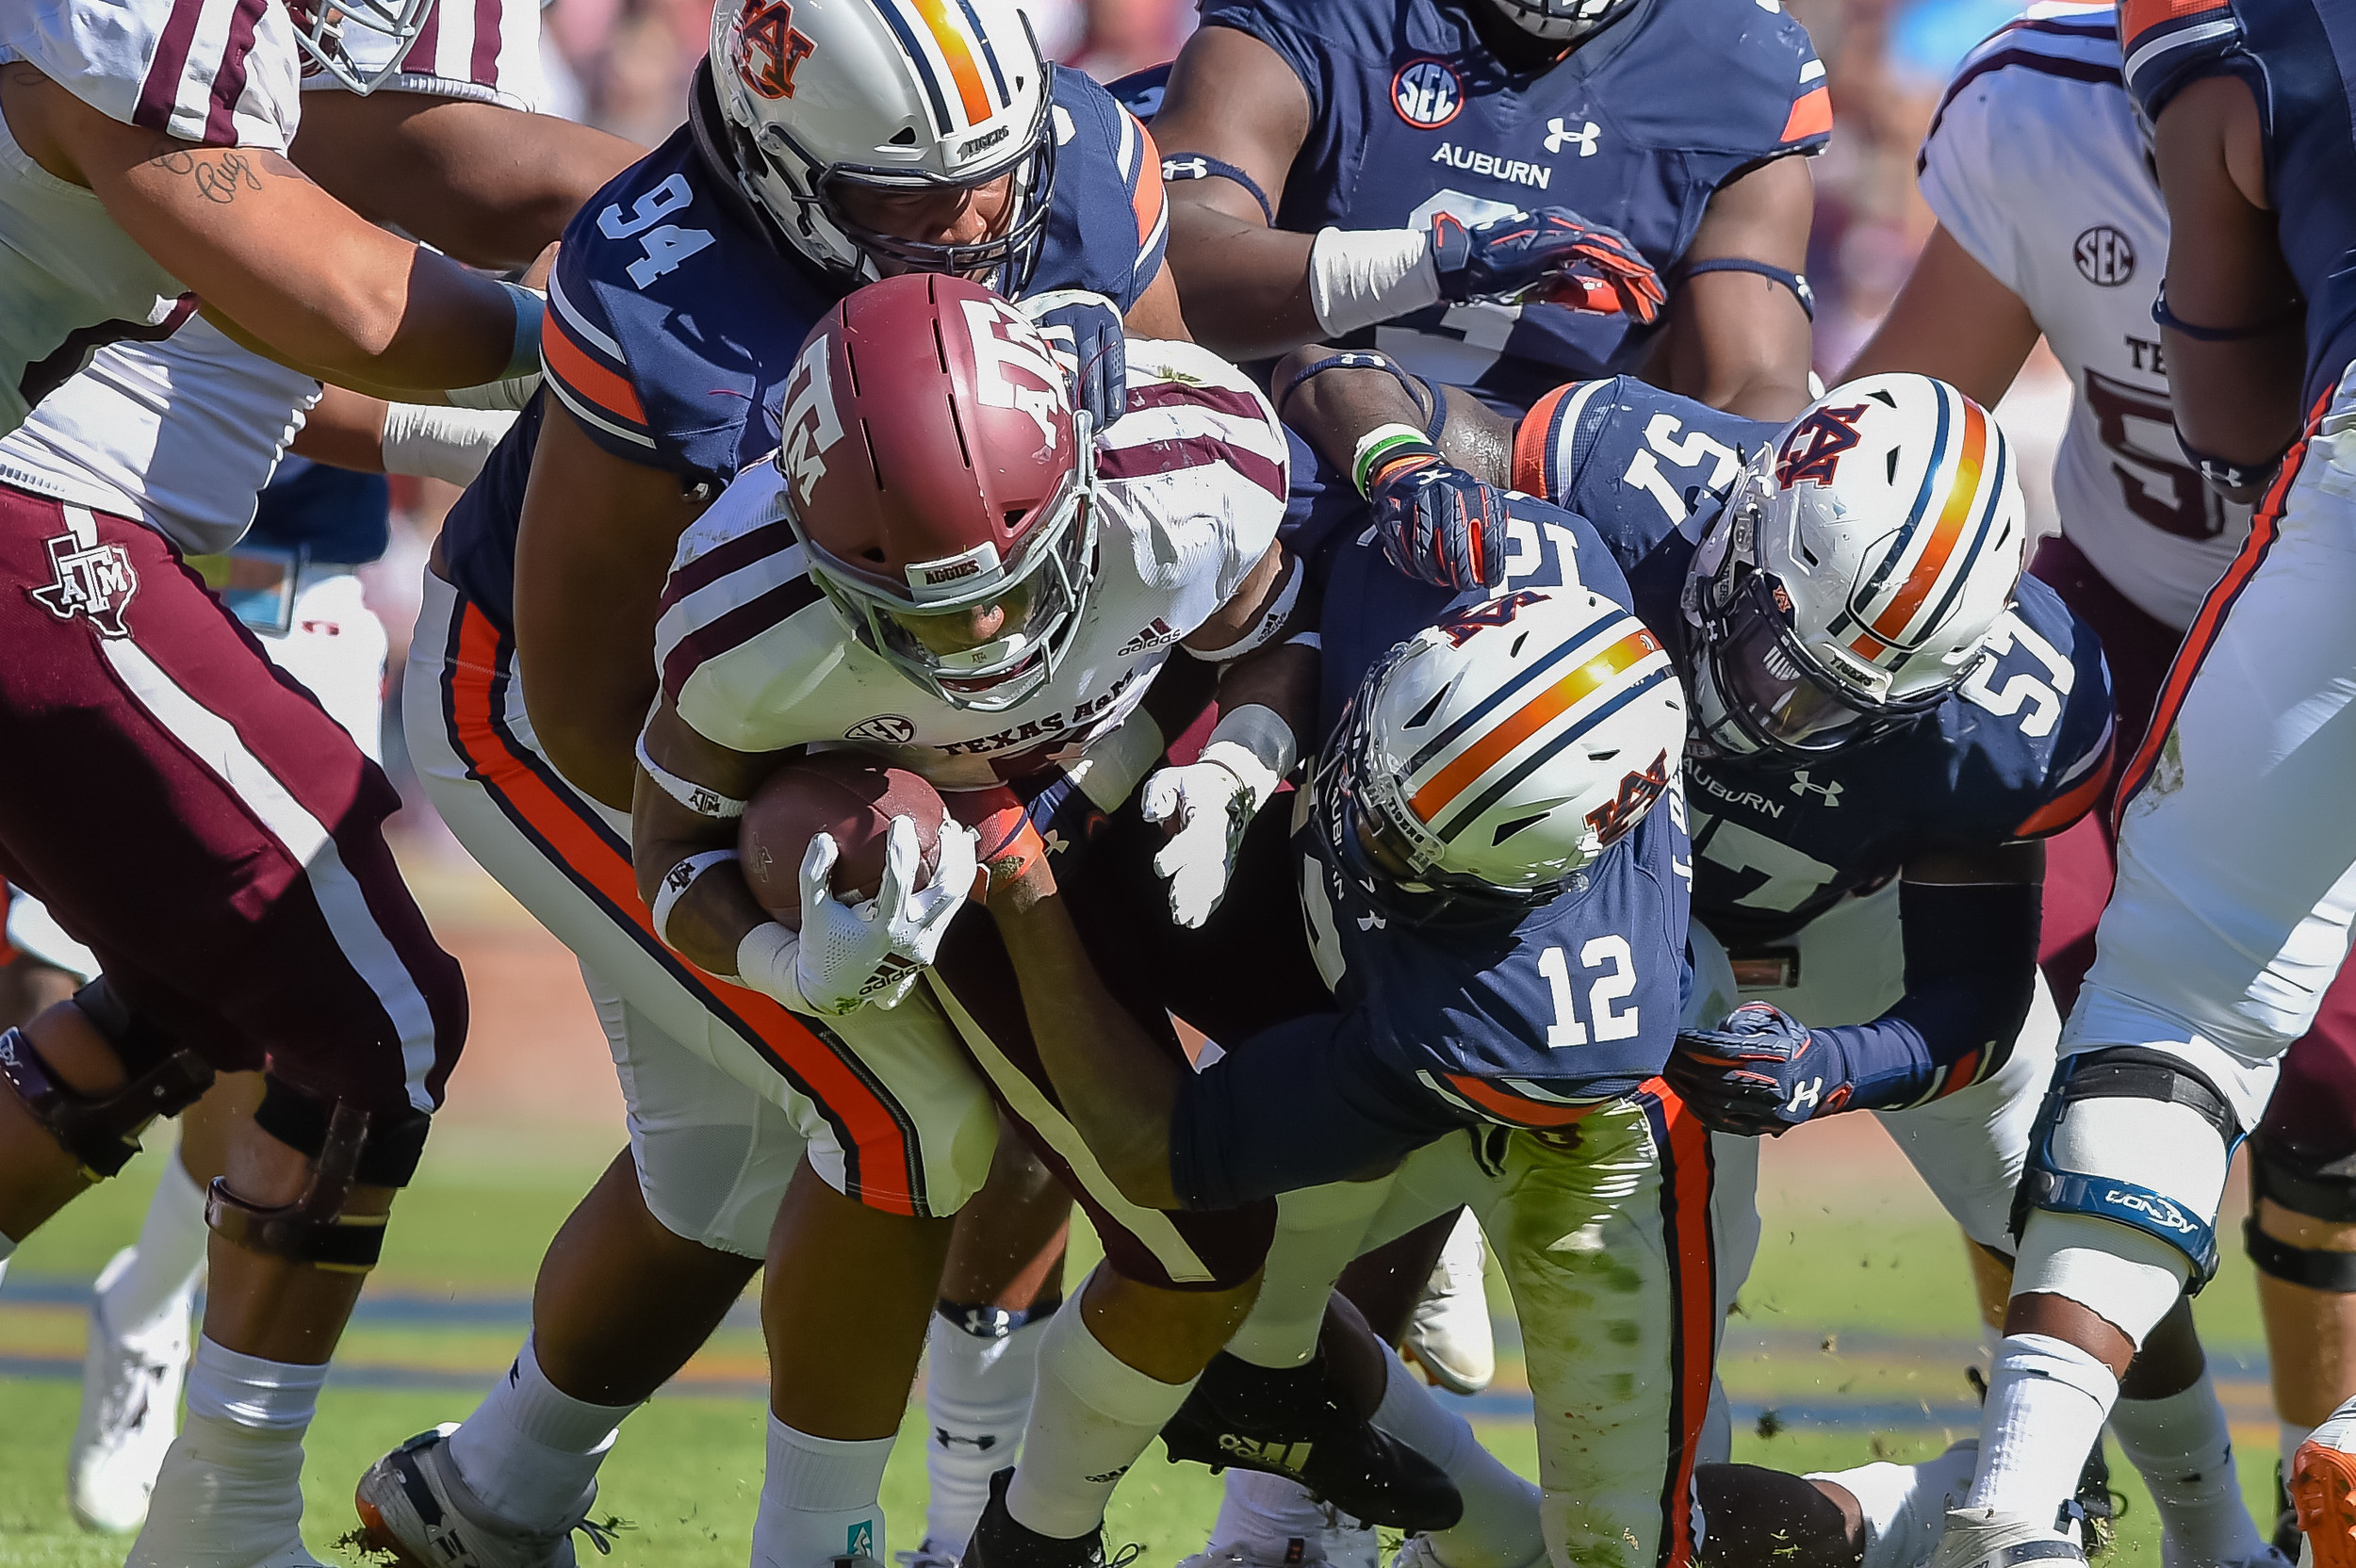 Texas A&M Aggies running back Trayveon Williams (5) is tackled by Auburn Tigers defensive lineman Tyrone Truesdell (94) and defensive back Jamel Dean (12) a during the first half of an NCAA football game against the Texas A&M Aggies Saturday, November 3, 2018, at Jordan-Hare Stadium in Auburn, Ala. (Photo by Jeff Johnsey)